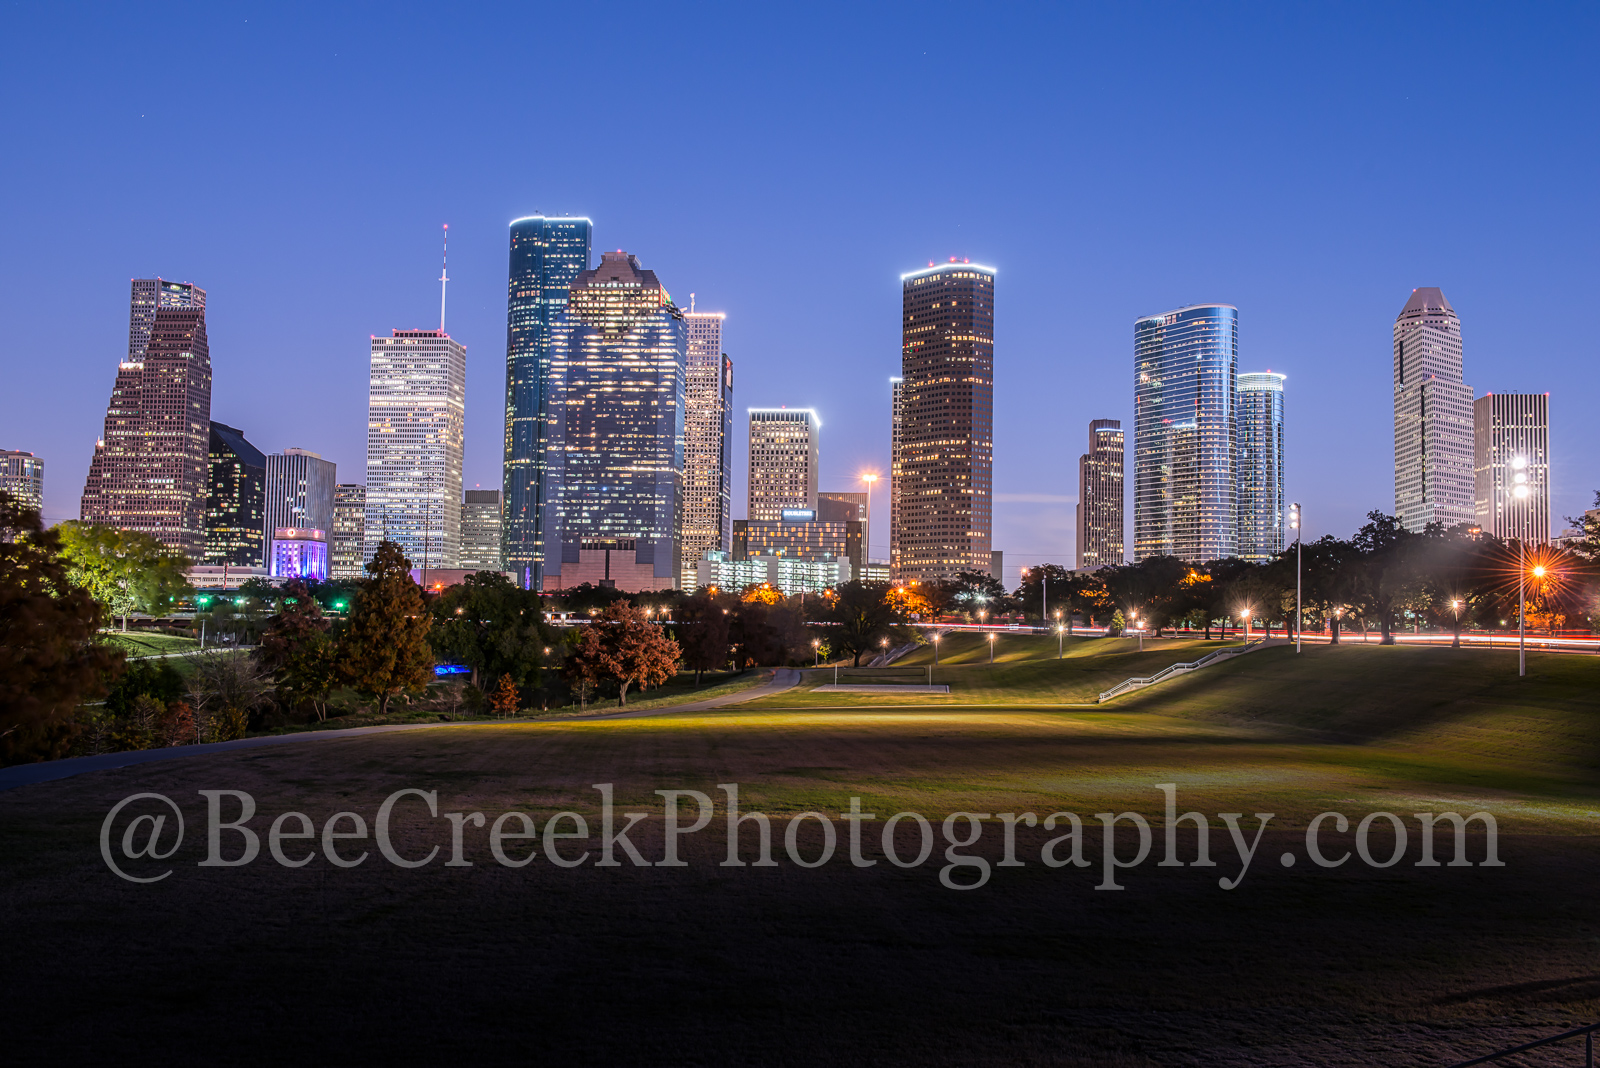 Houston, blue hour, buildings, city, cityscape, cityscapes, downtown, dusk, evening, high rise, lights, night, park, skyline, skylines, skyscrapers, tall, views, photo